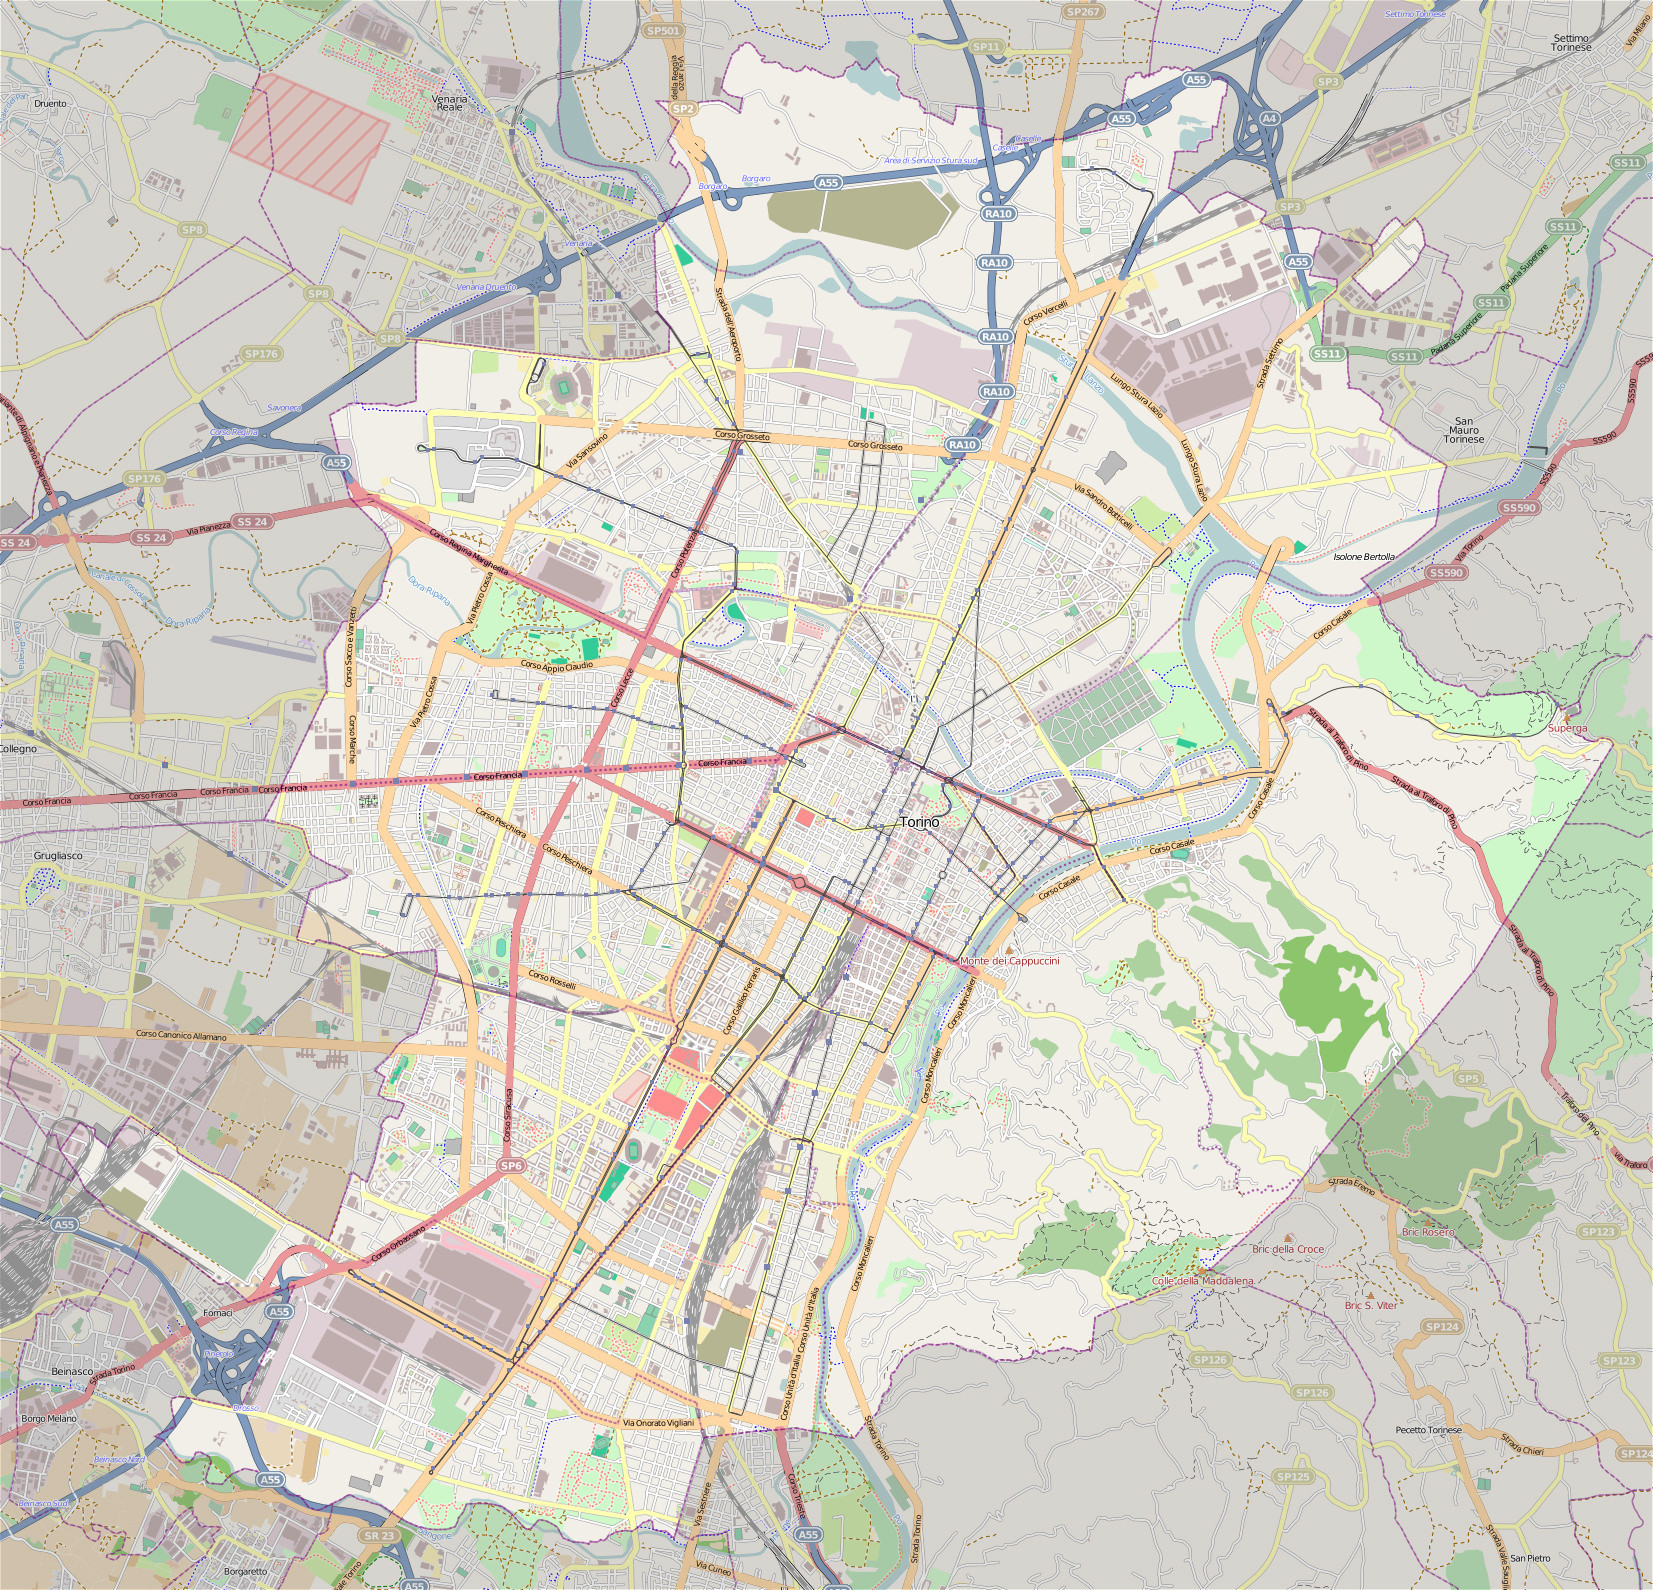 Map Of Italy Torino.File Location Map Italy Torino Jpg Wikimedia Commons